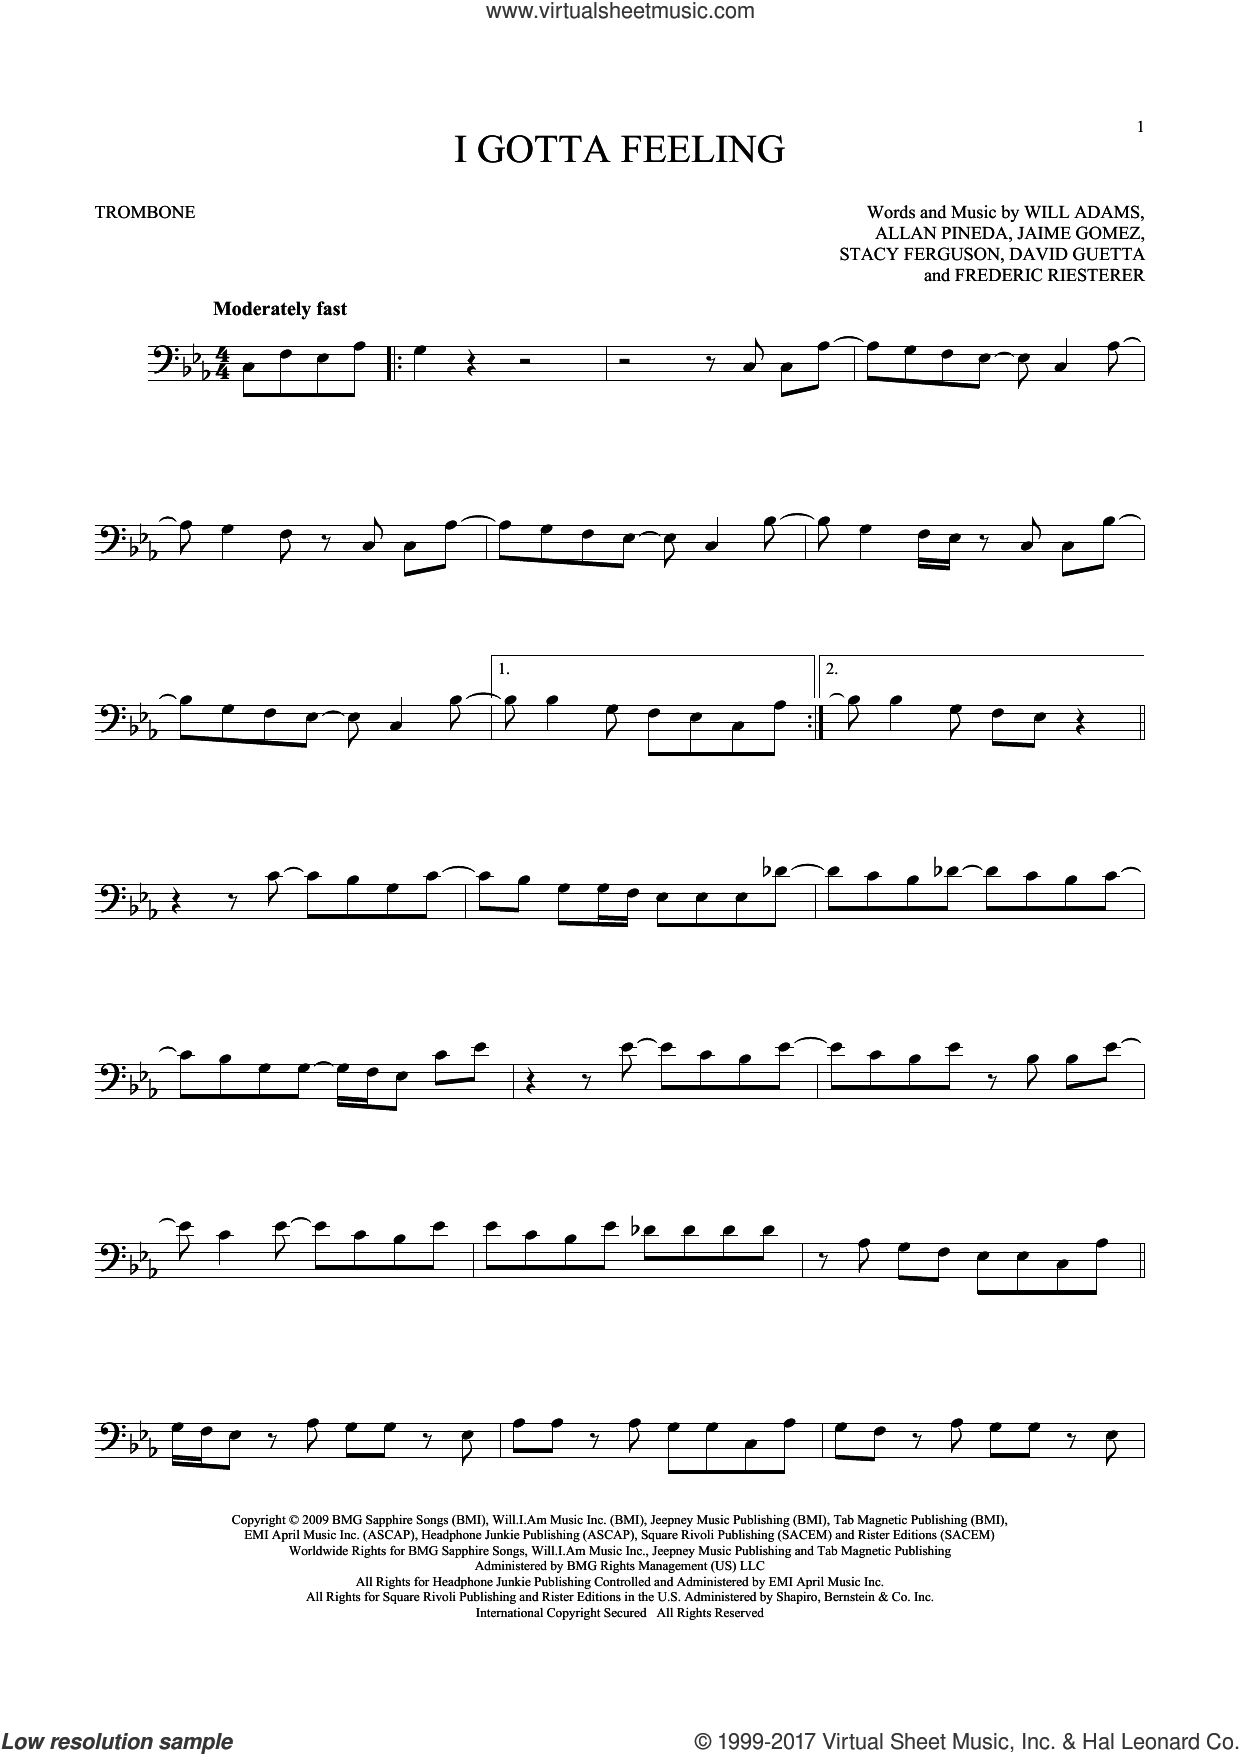 I Gotta Feeling sheet music for trombone solo by Will Adams, Black Eyed Peas, David Guetta and Stacy Ferguson. Score Image Preview.